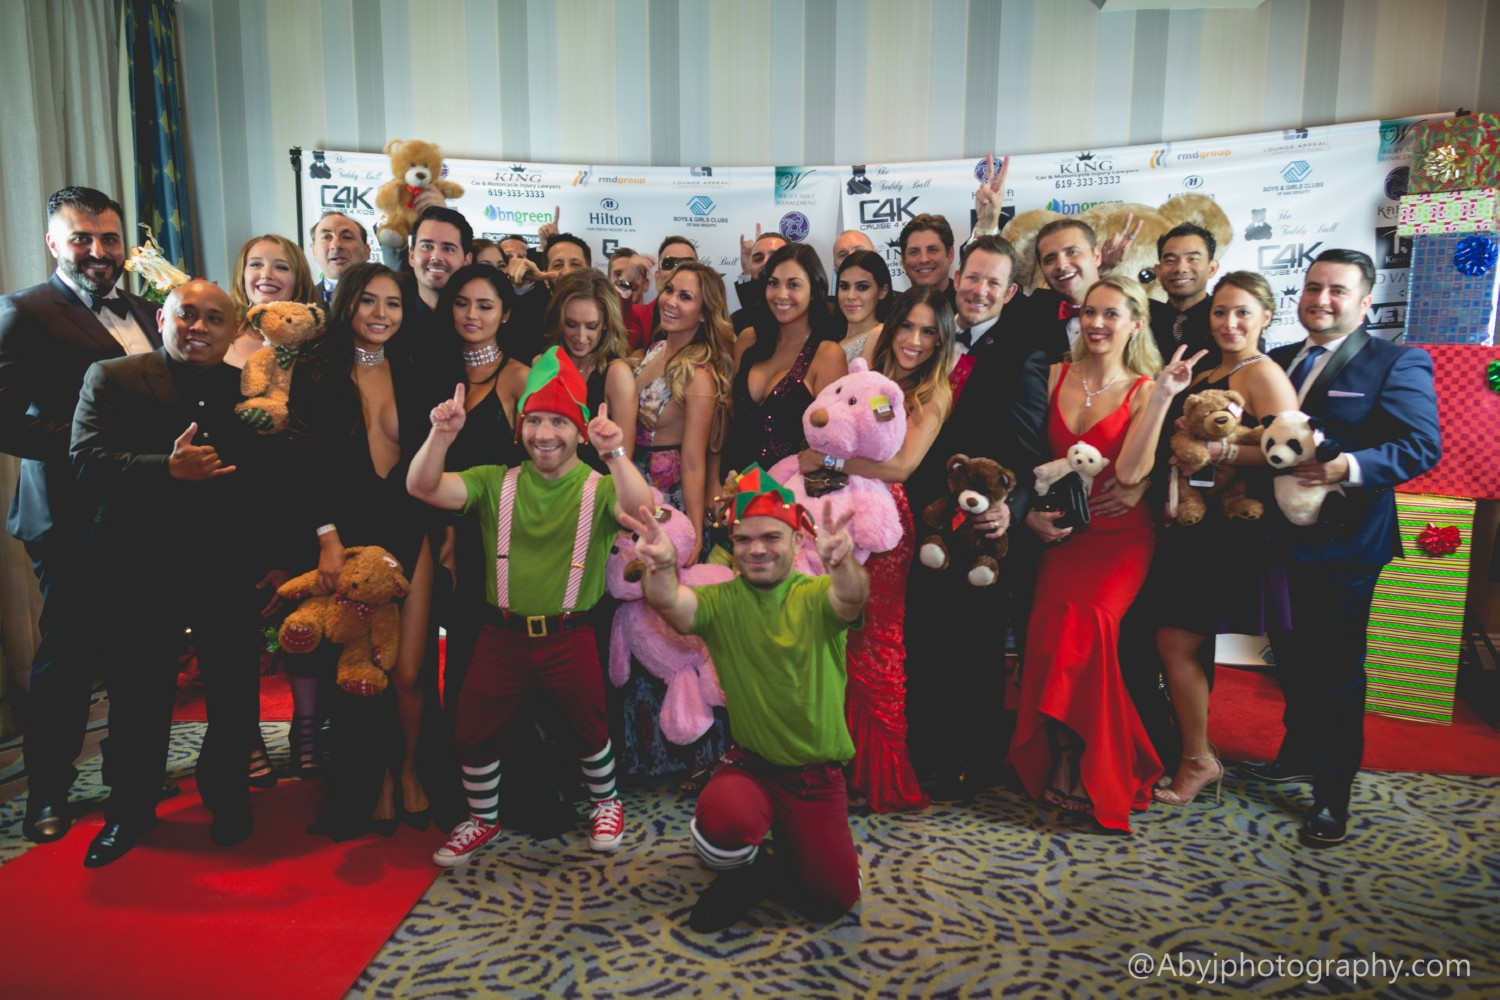 ABYJ_Photography_2016_Teddy_Ball - 206.jpg